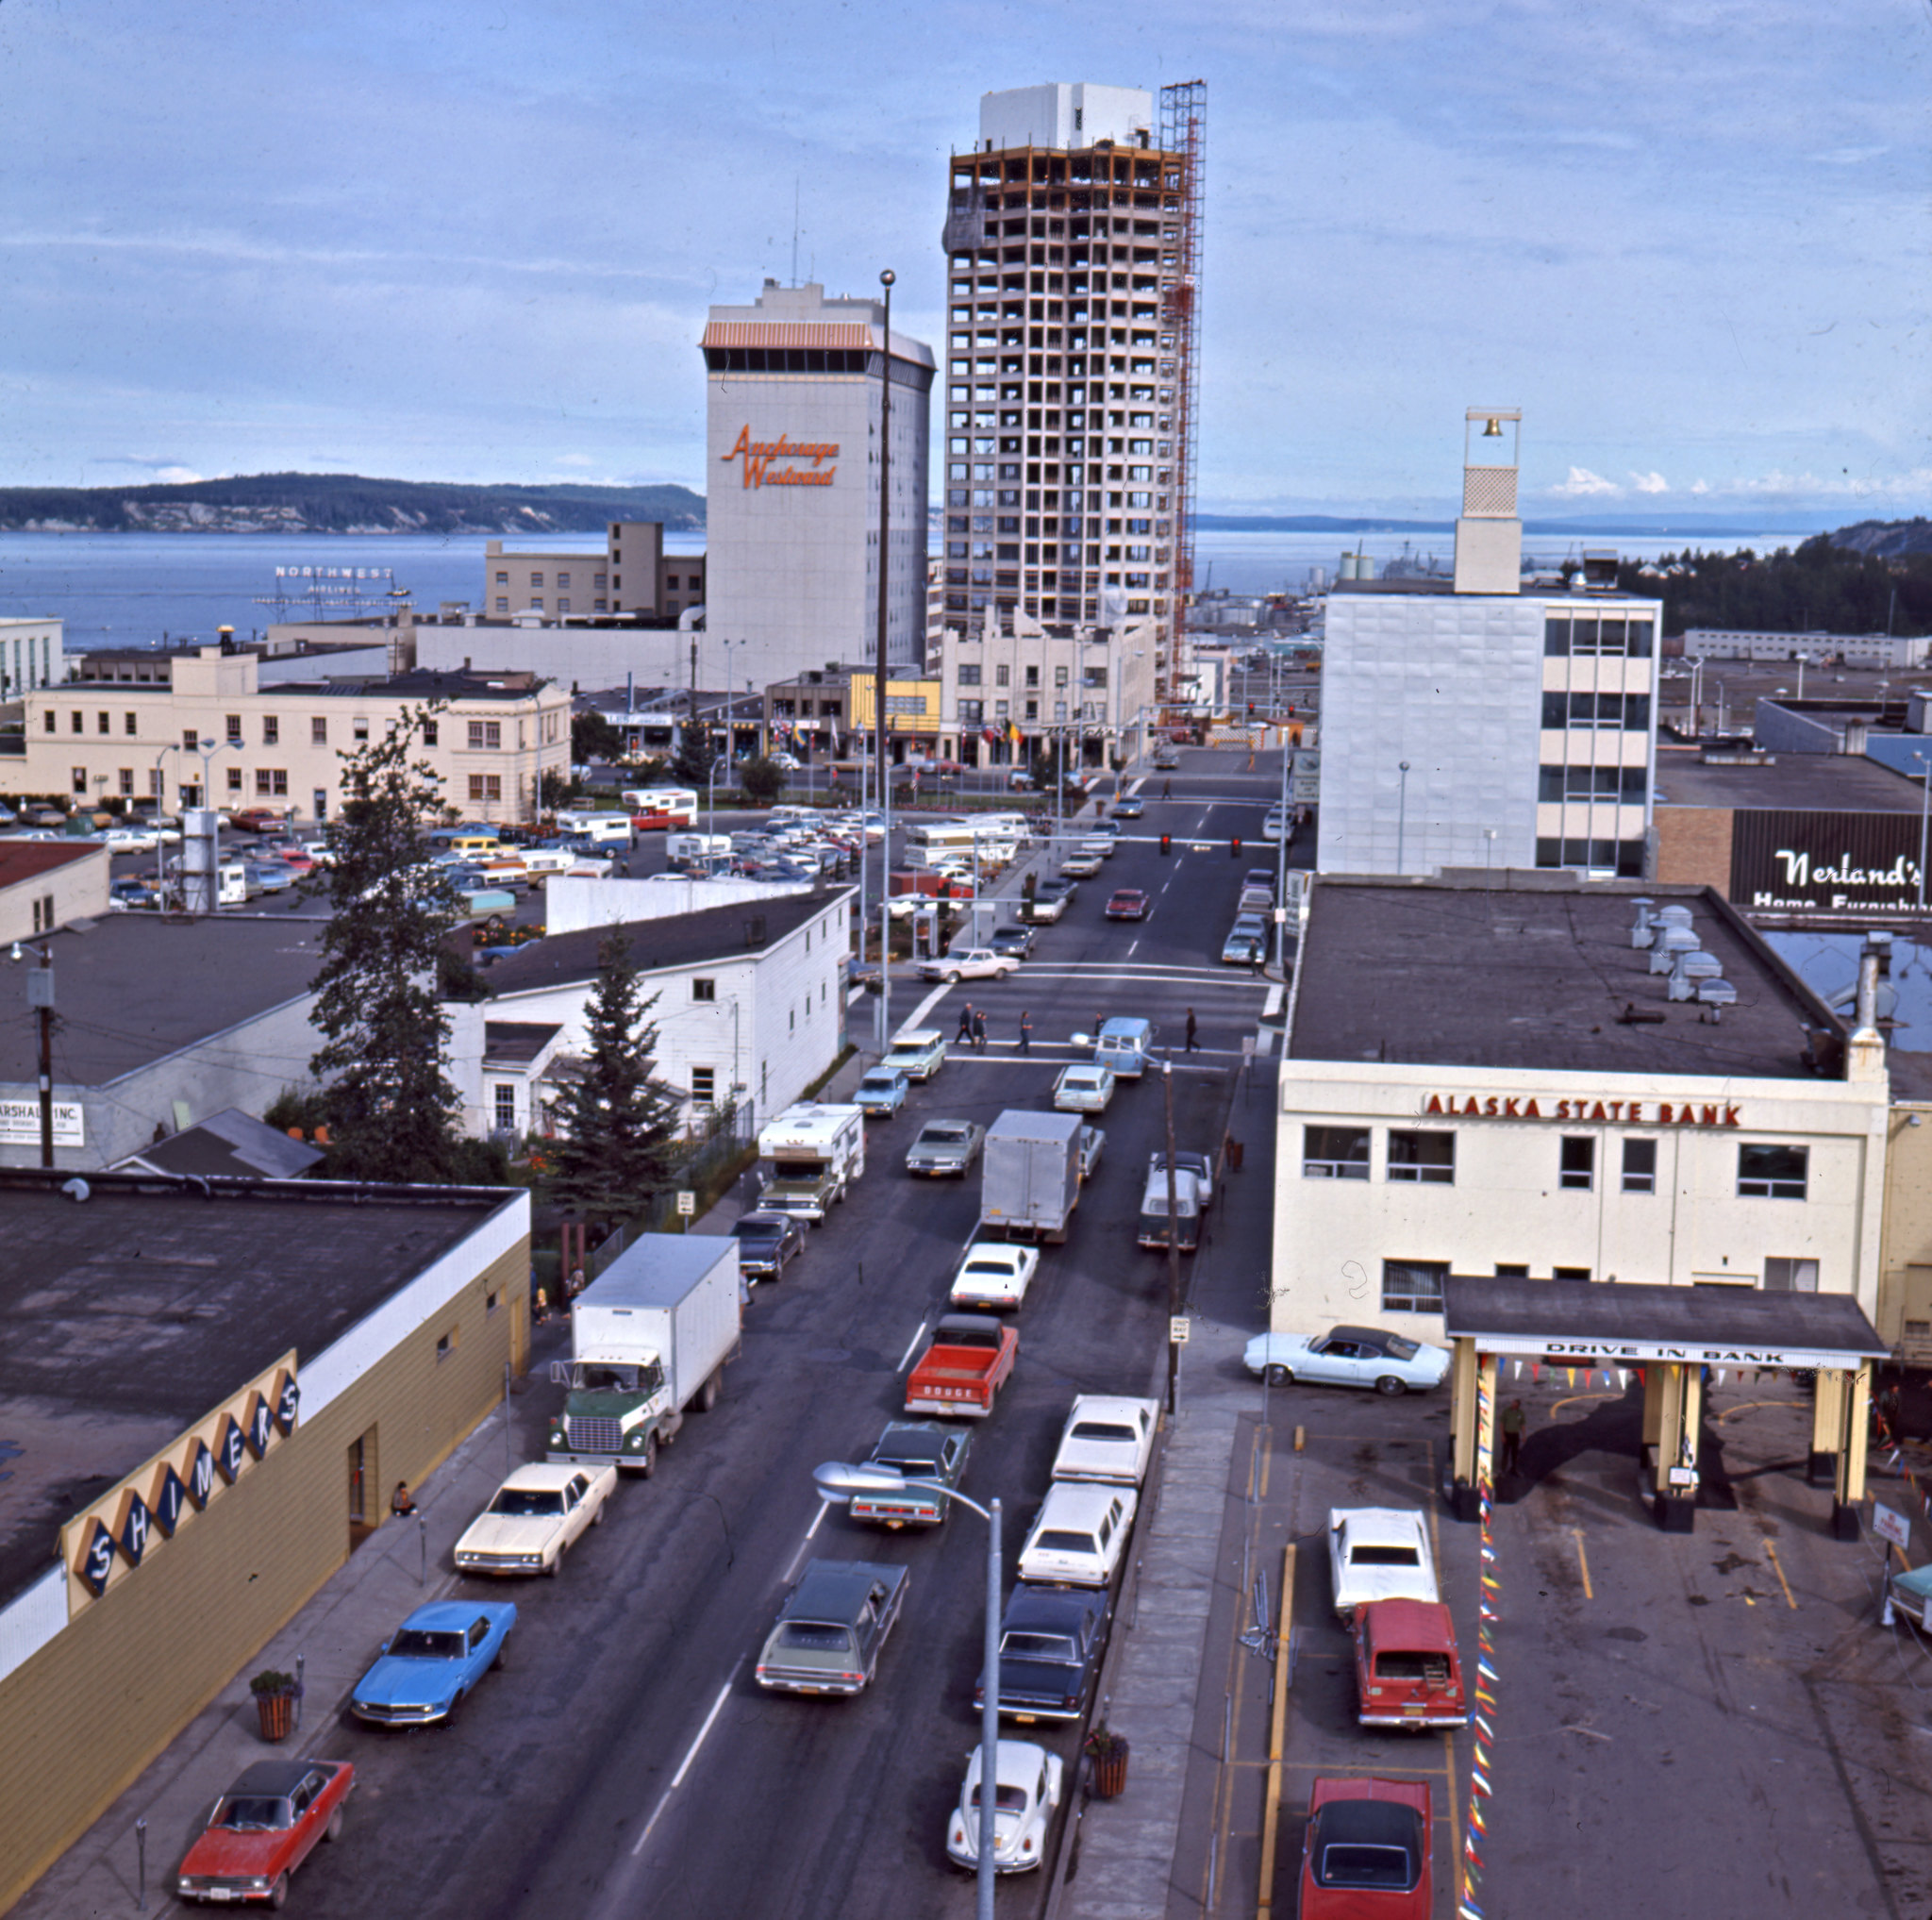 Color art anchorage - Arr Anchorage Alaska C 1968